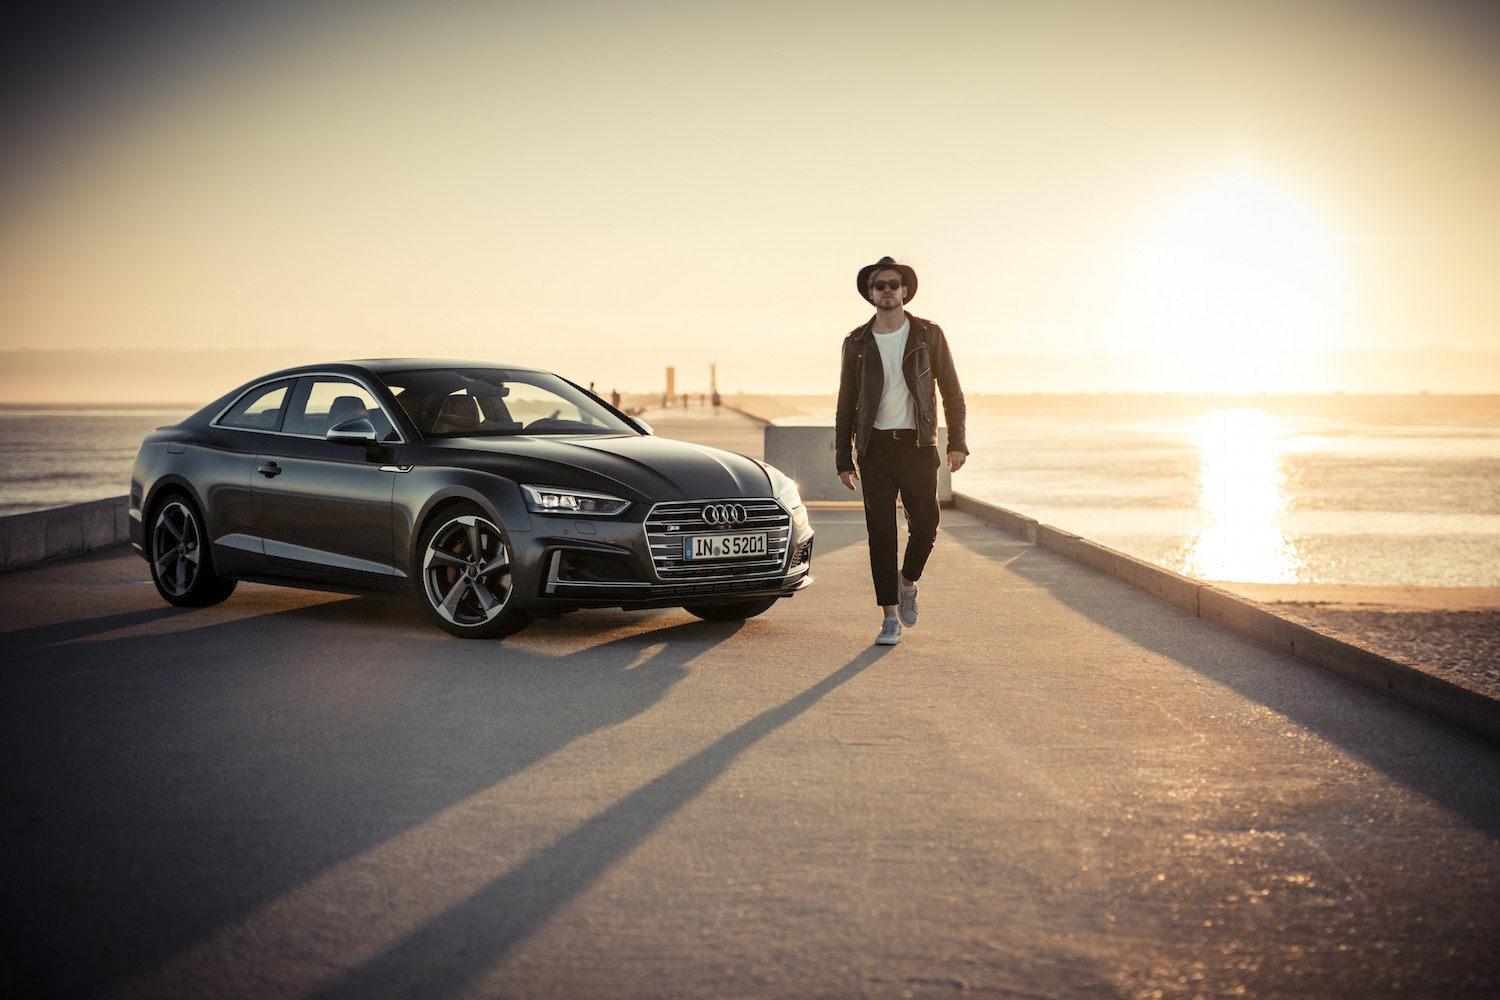 The new Audi A5 & S5 – Taking Audi's new Coupés for a spin in Northern Portugal